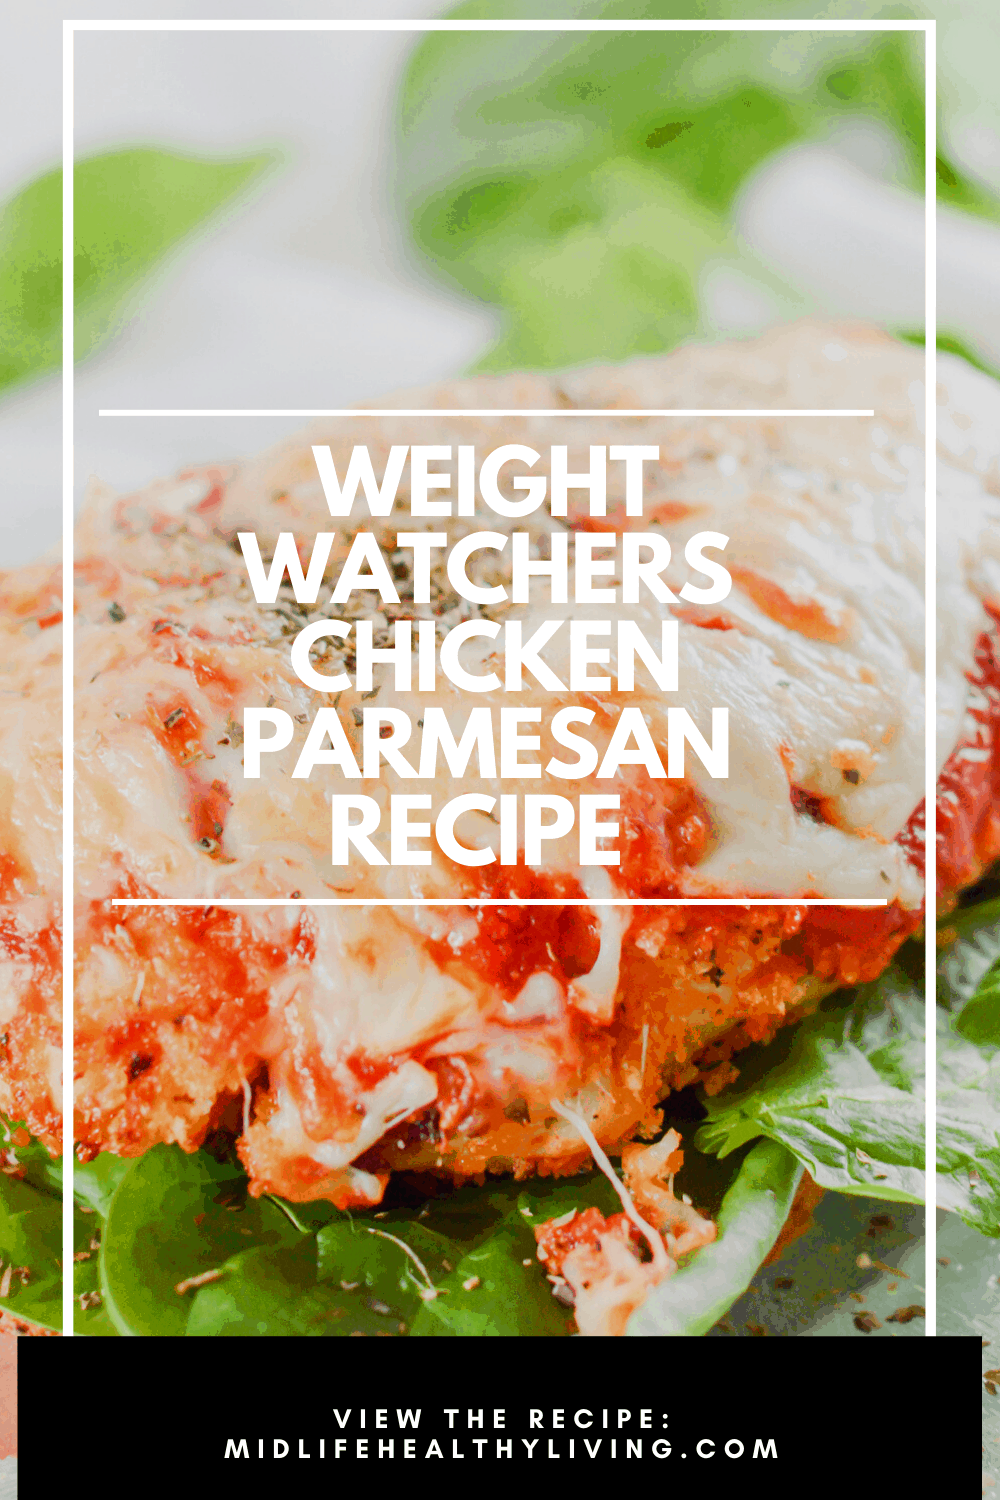 Here we see a pin showing the finished weight watchers chicken parmesan recipe with the title in the middle.